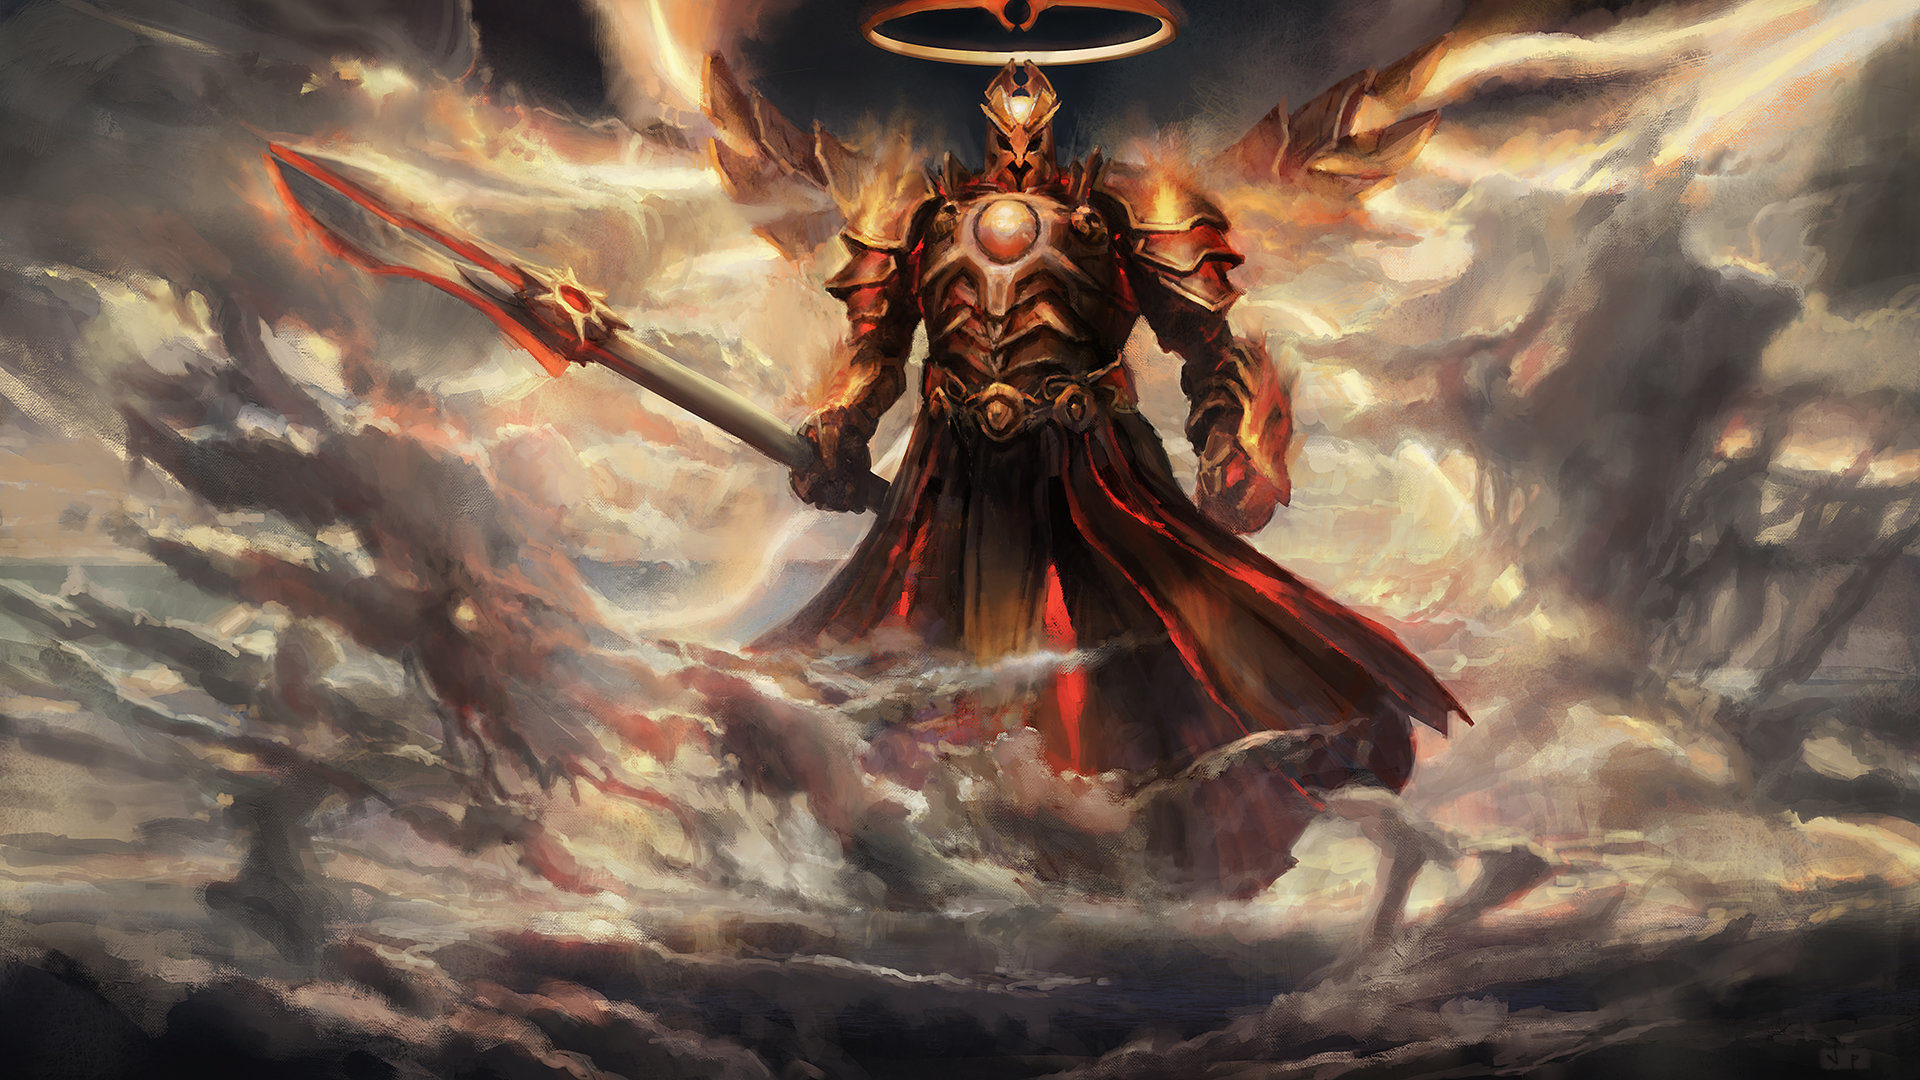 Heroes of the Storm: Diablo's Imperius steps into the Nexus on January 2nd